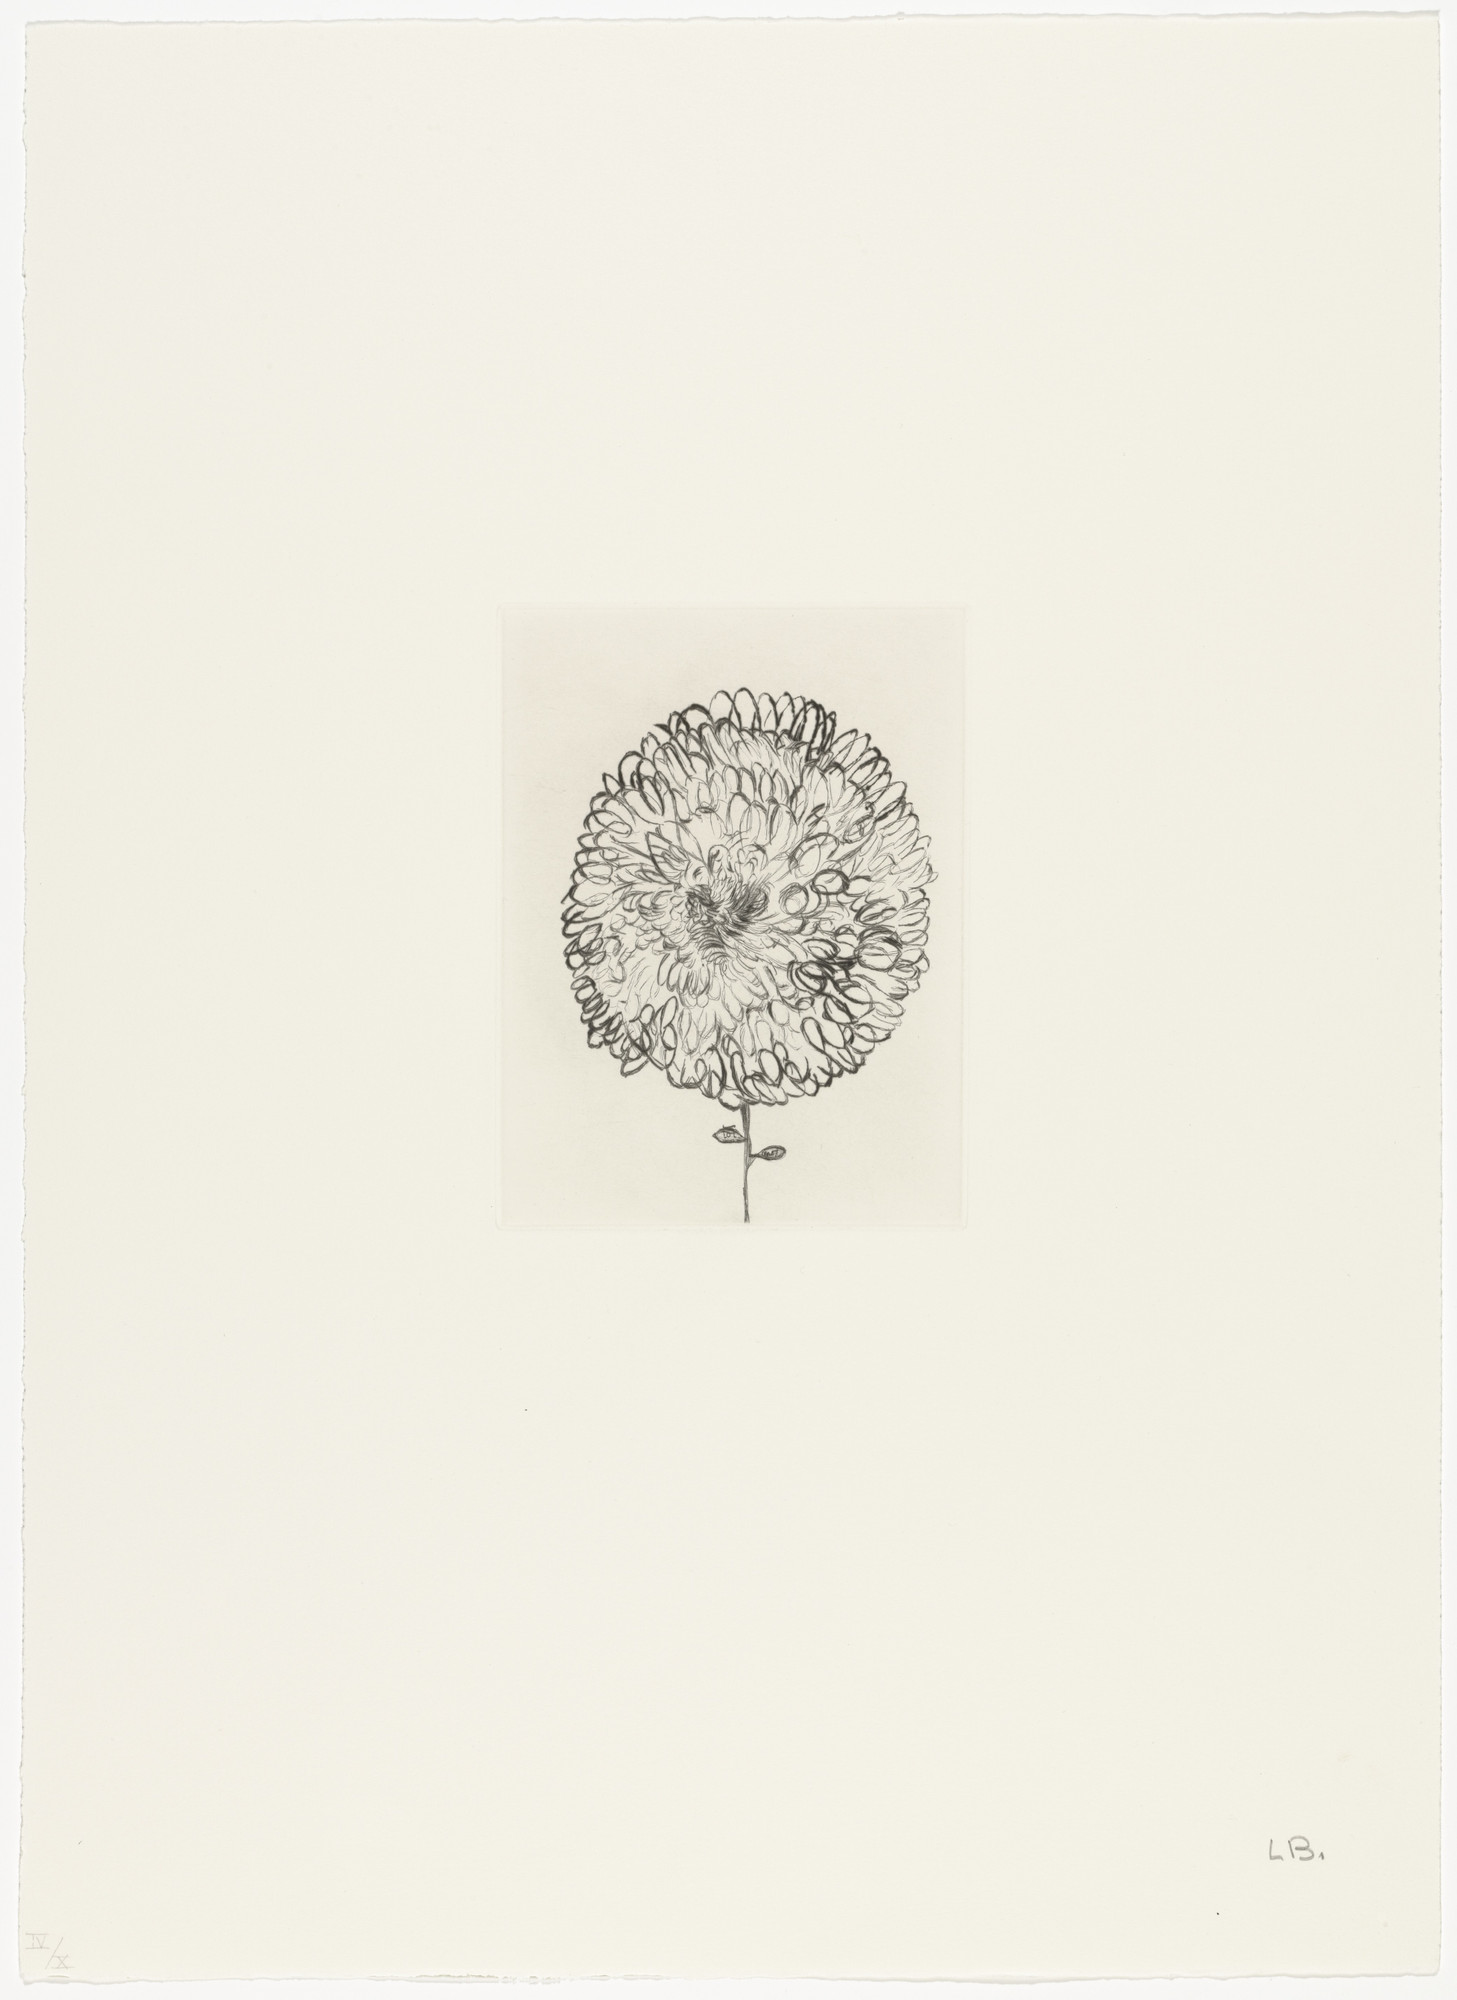 Louise Bourgeois. Untitled, plate 1 of 10, from the portfolio, Homely Girl, A Life. 1992